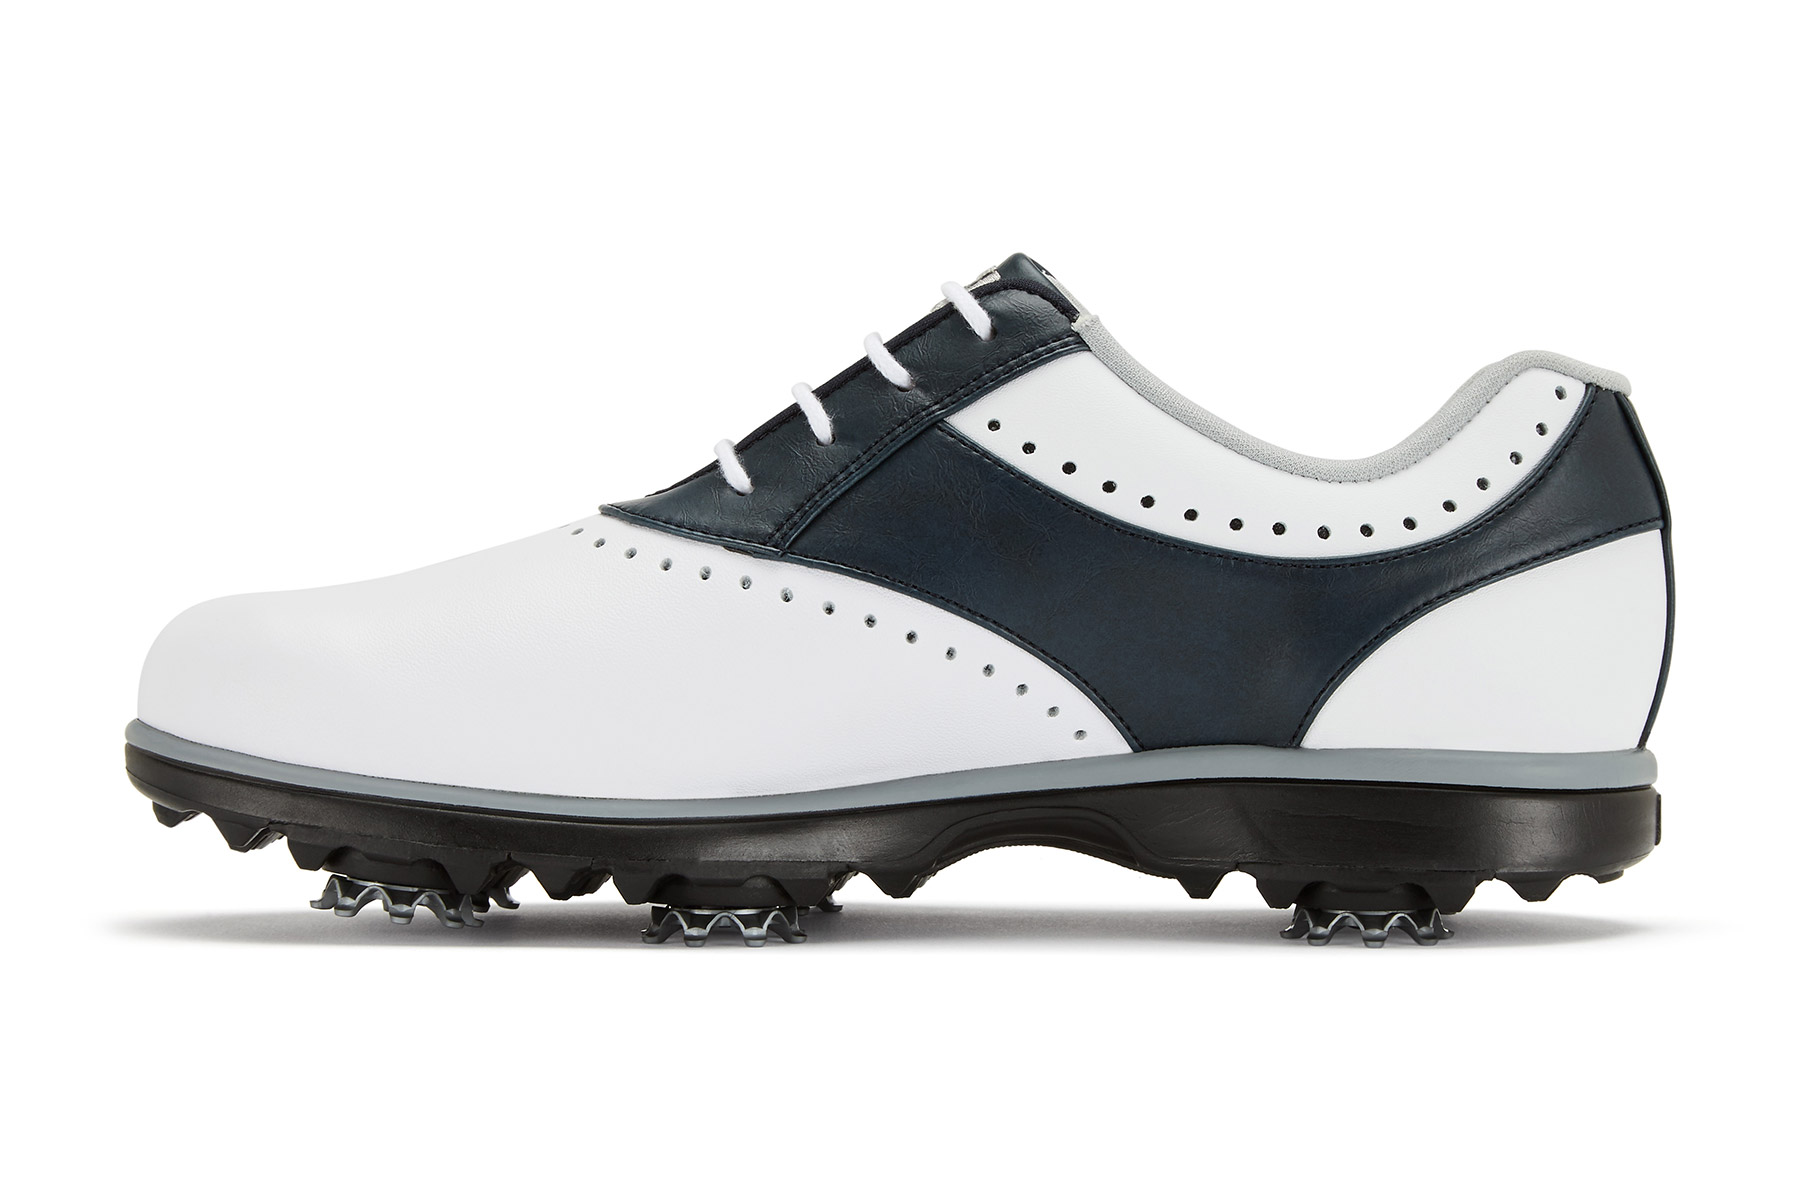 Ladies Golf Shoes Wide Fitting